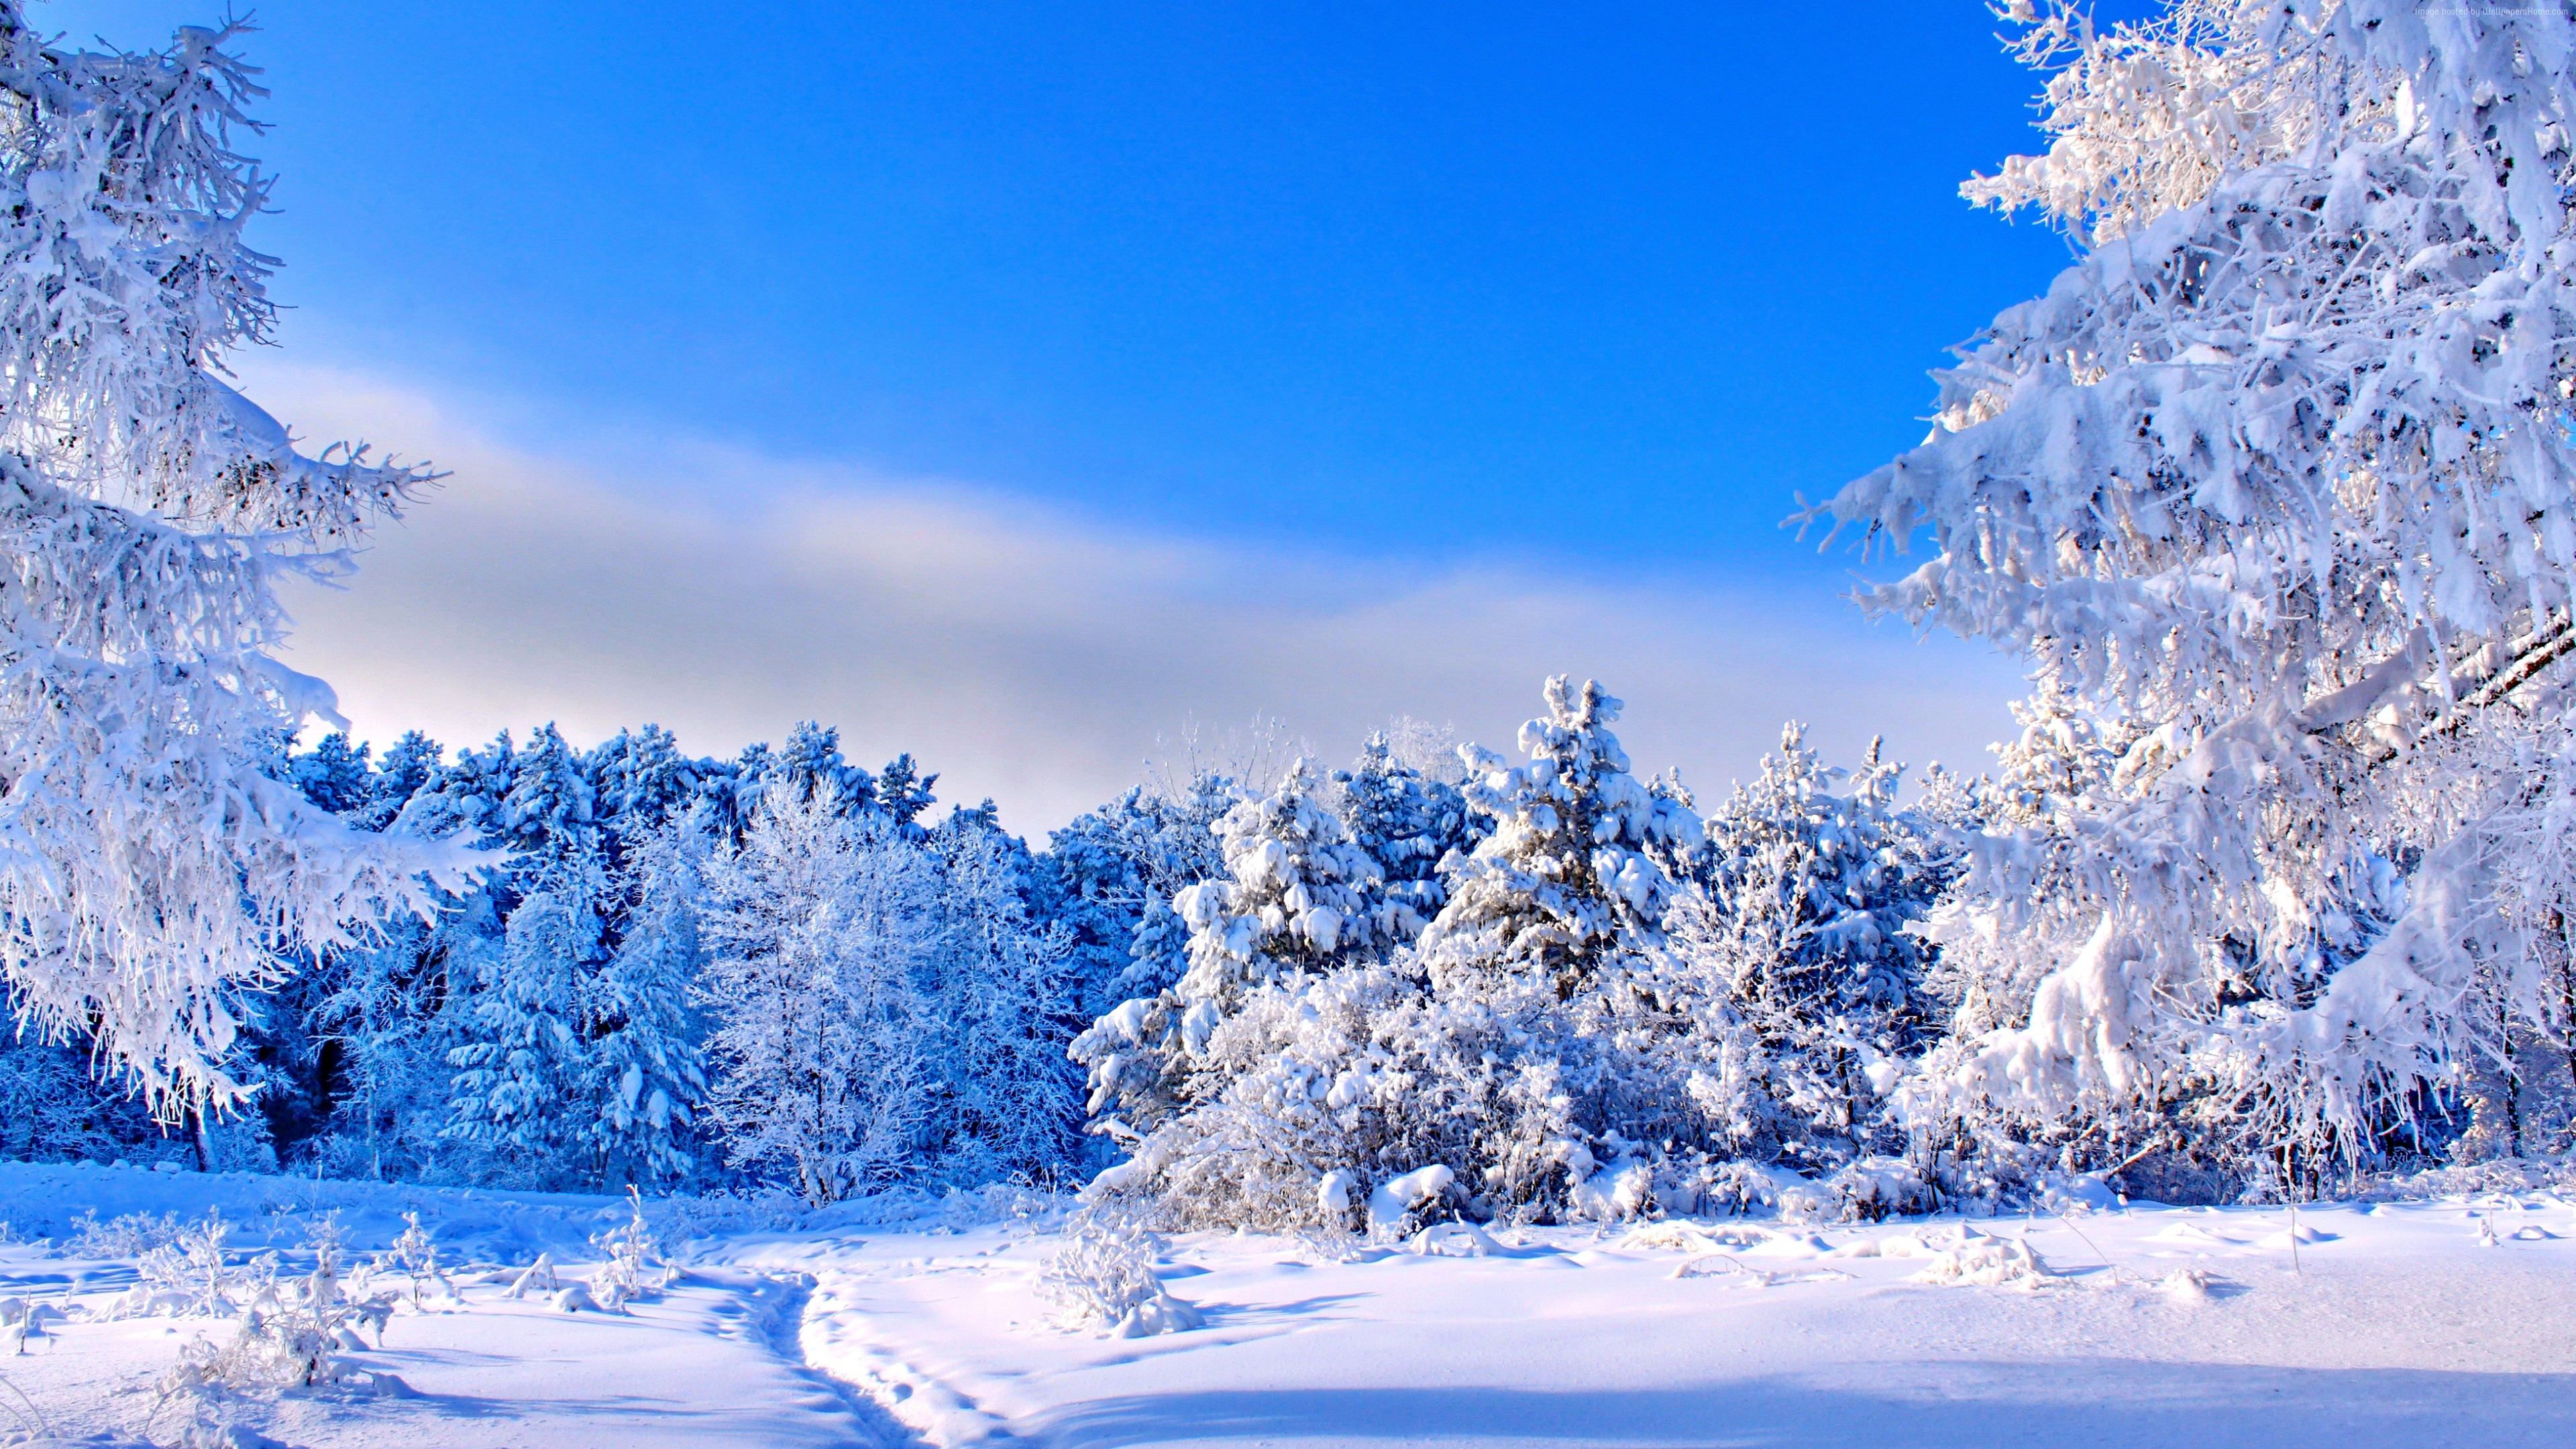 Wallpaper Forest Trees Snow Winter 4k Nature Wallpaper Download High Resolution 4k Wallpaper